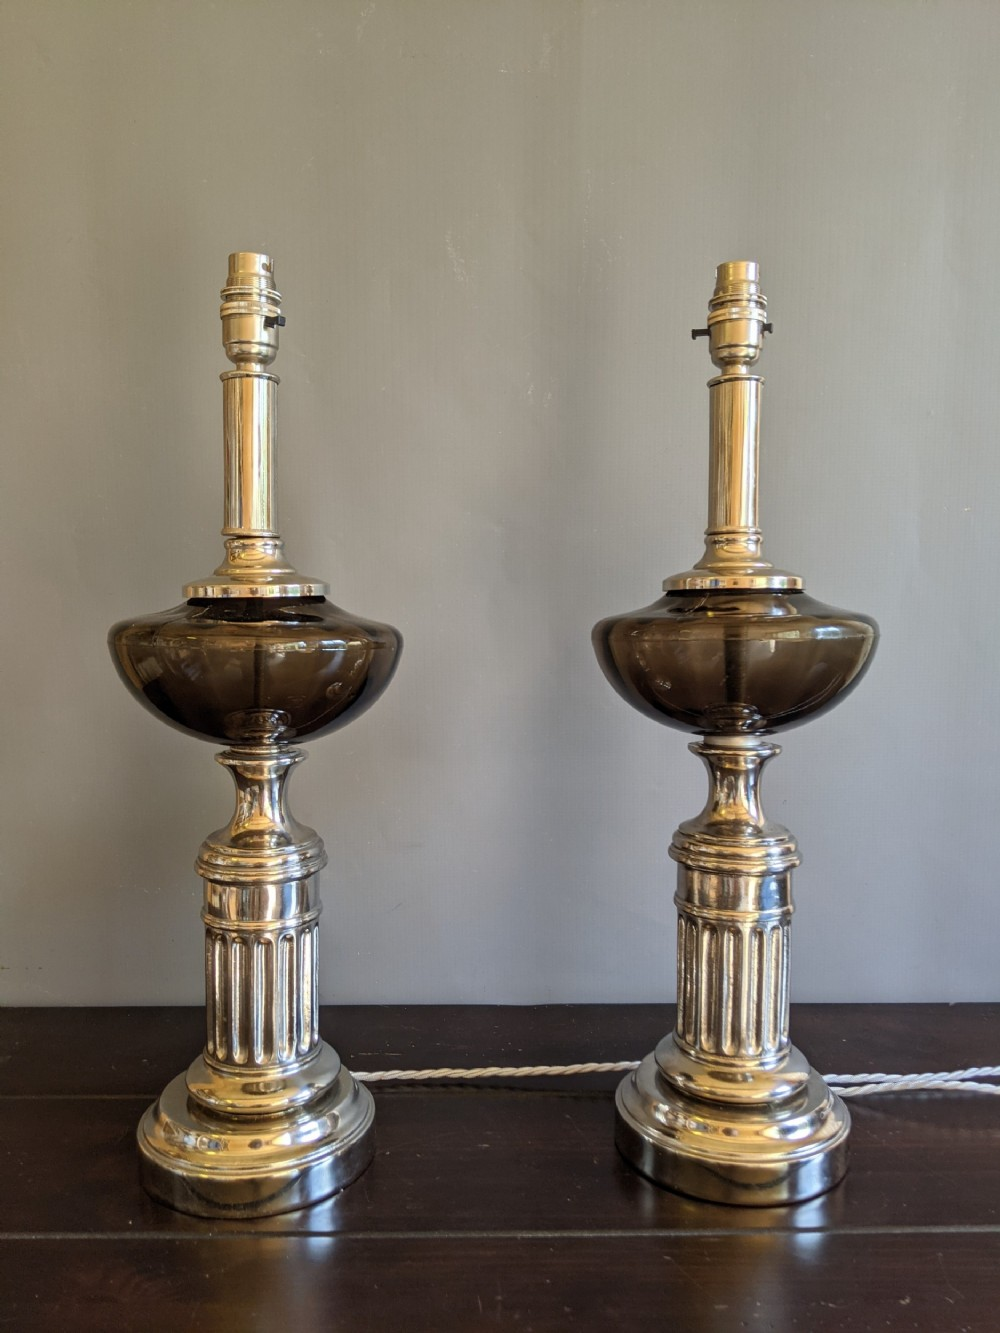 interesting pair of glass nickel plated lamps